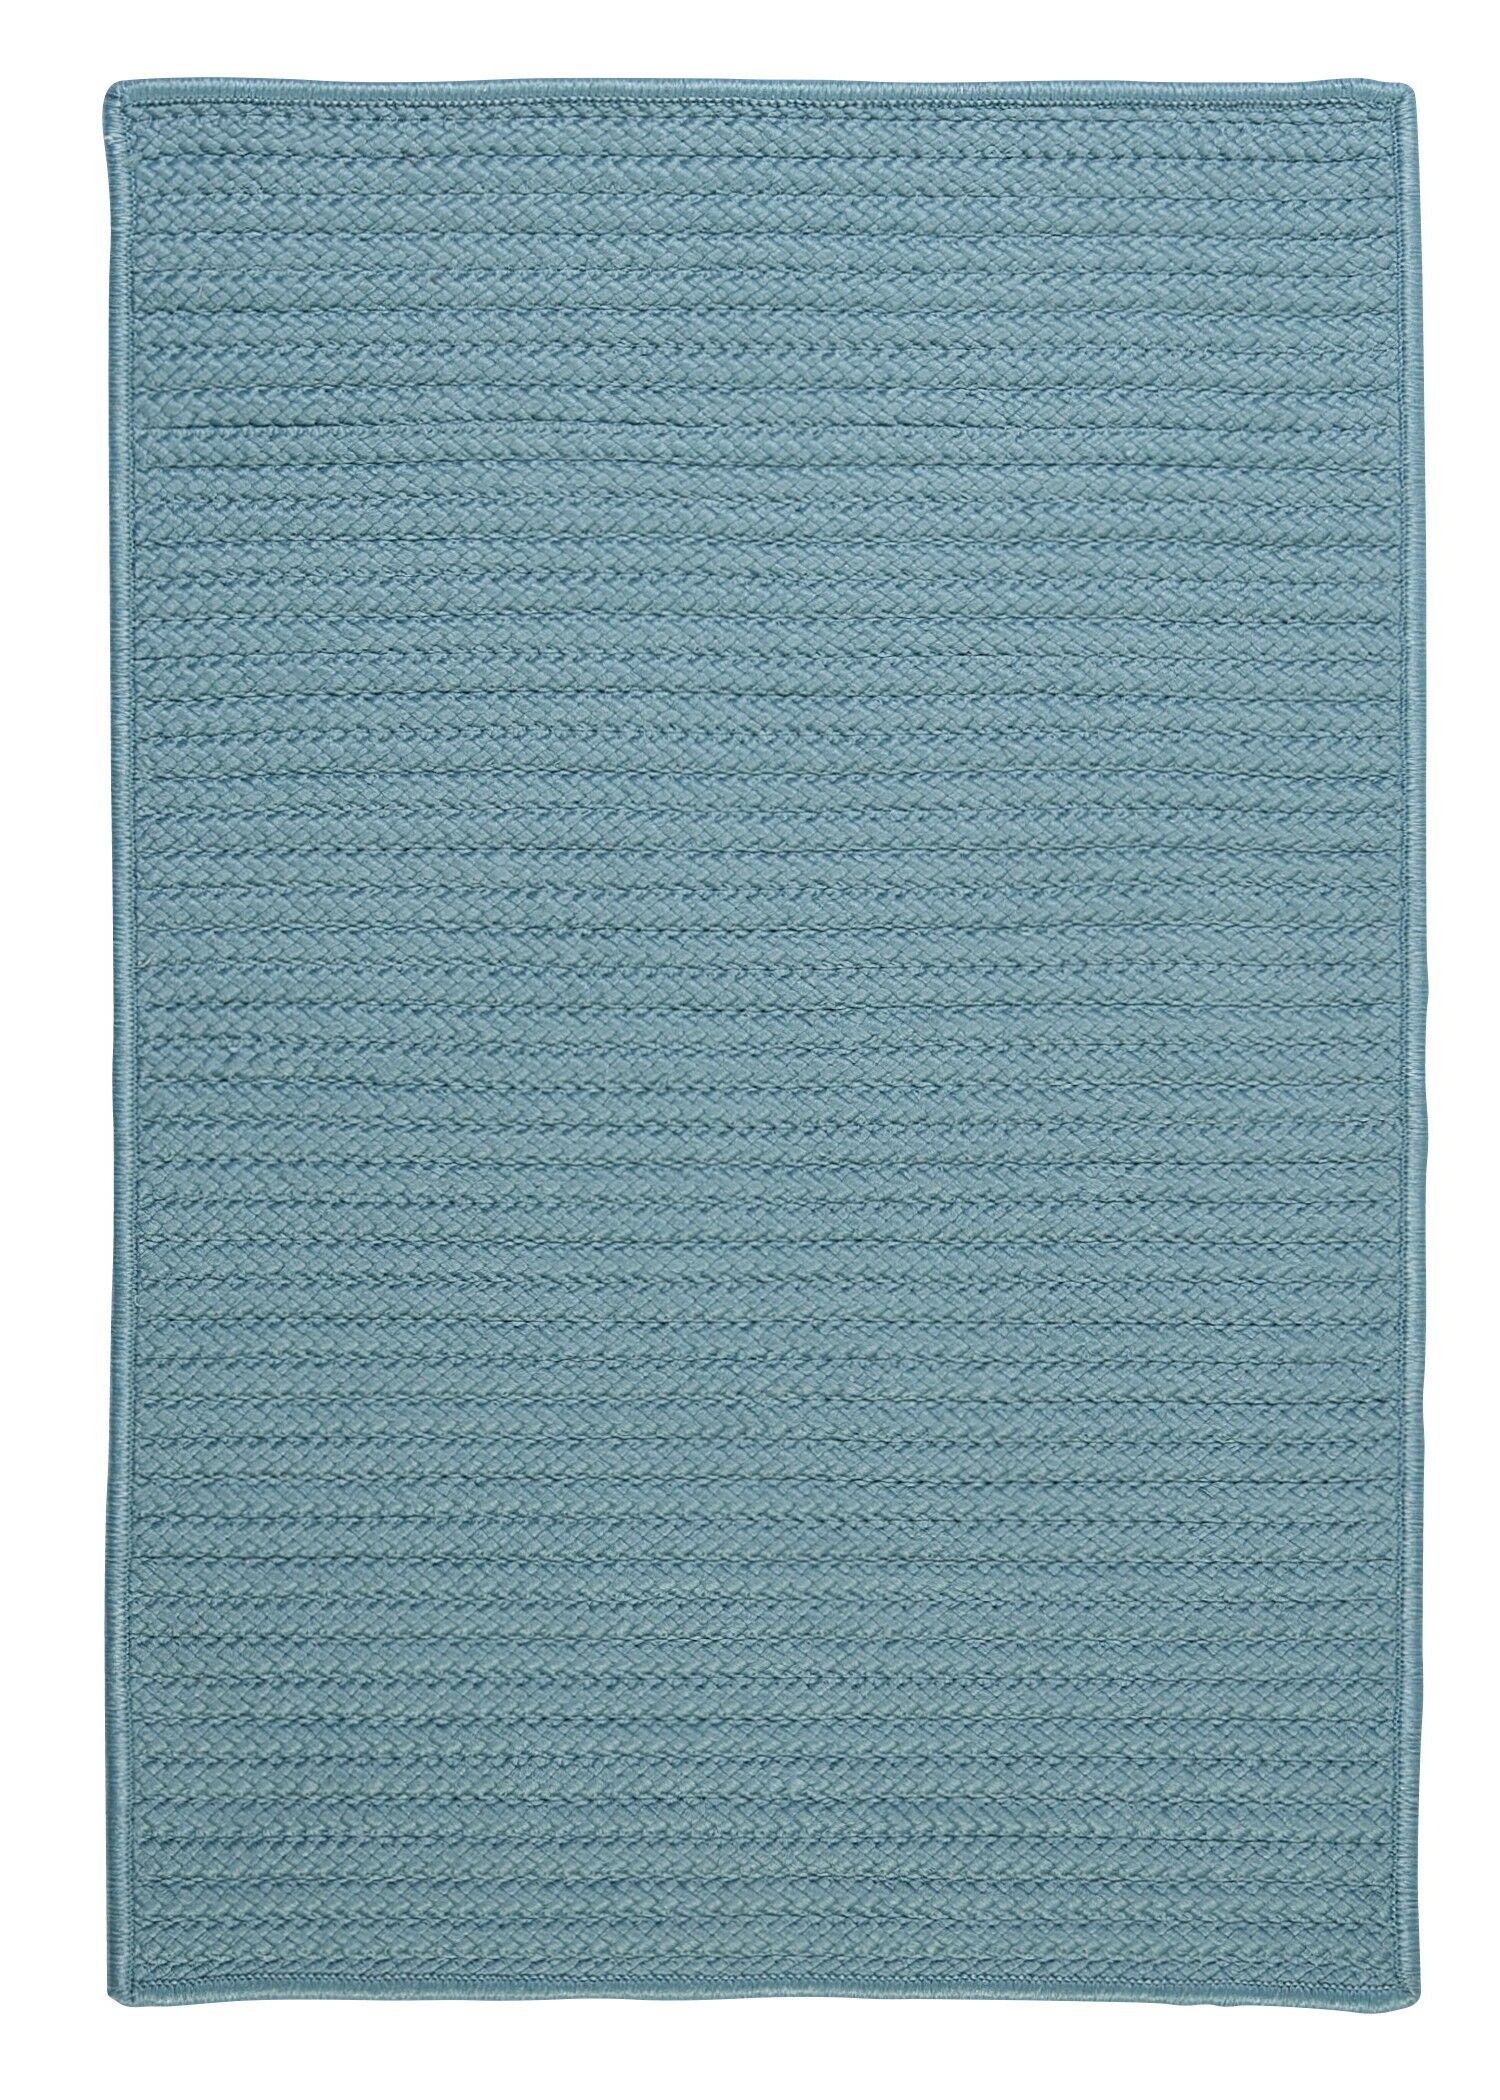 Raulston Blue Indoor/Outdoor Area Rug Rug Size: Square 6'